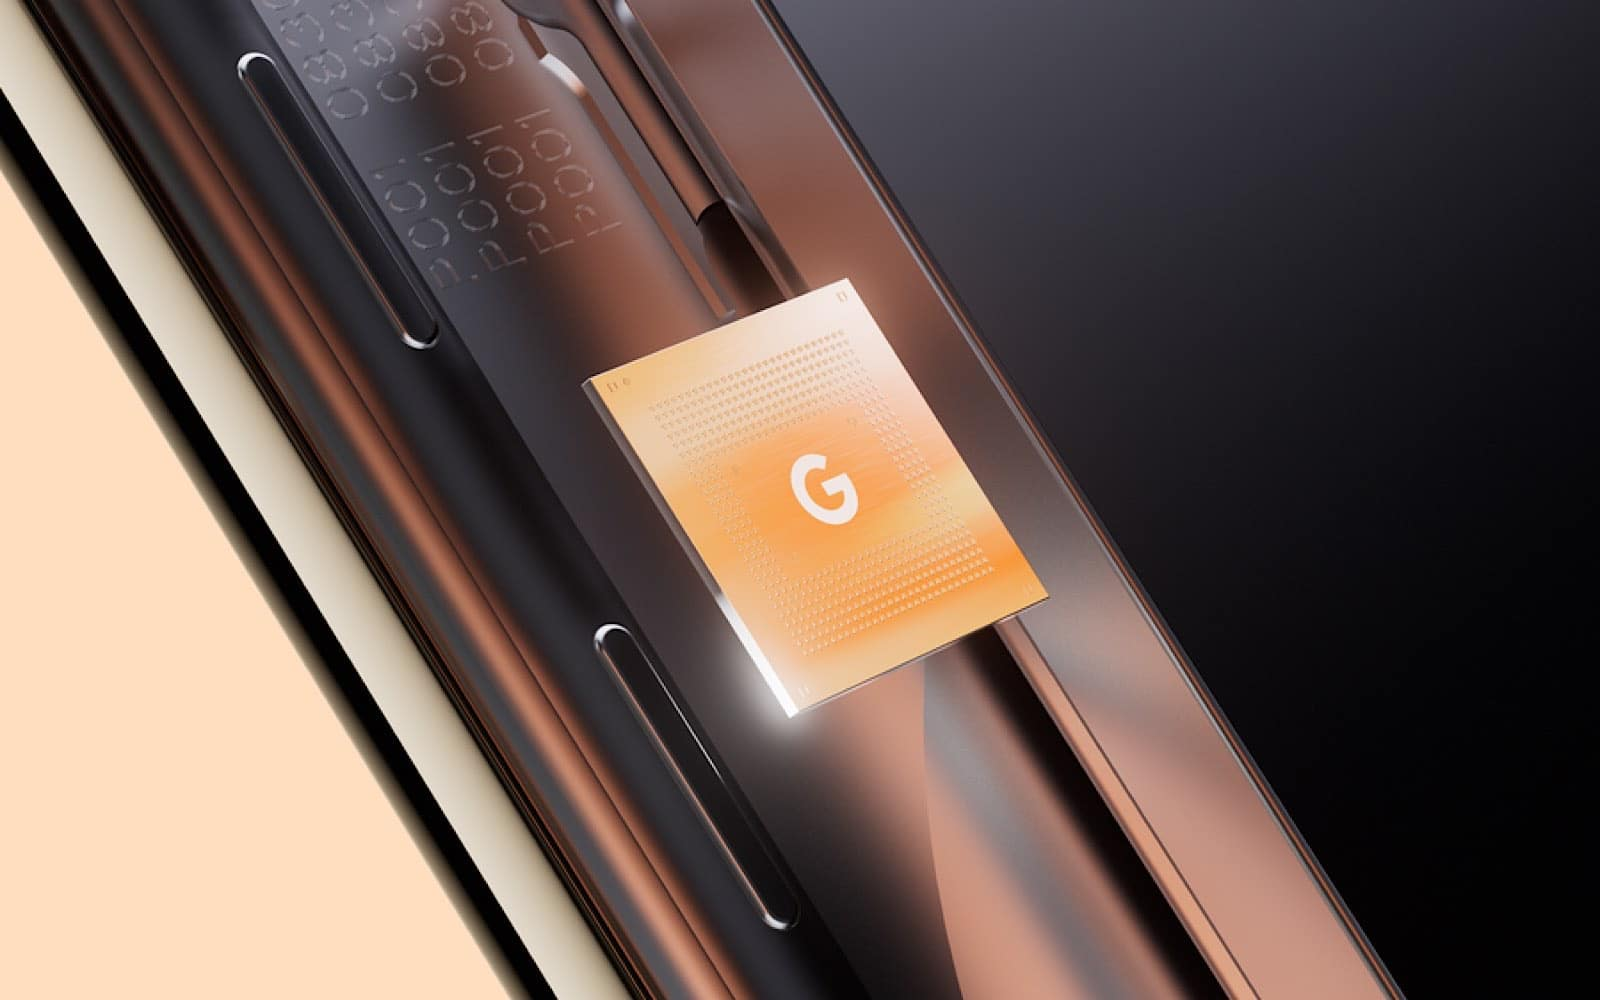 Google's Tensor chip at the heart of its Pixel 6 range